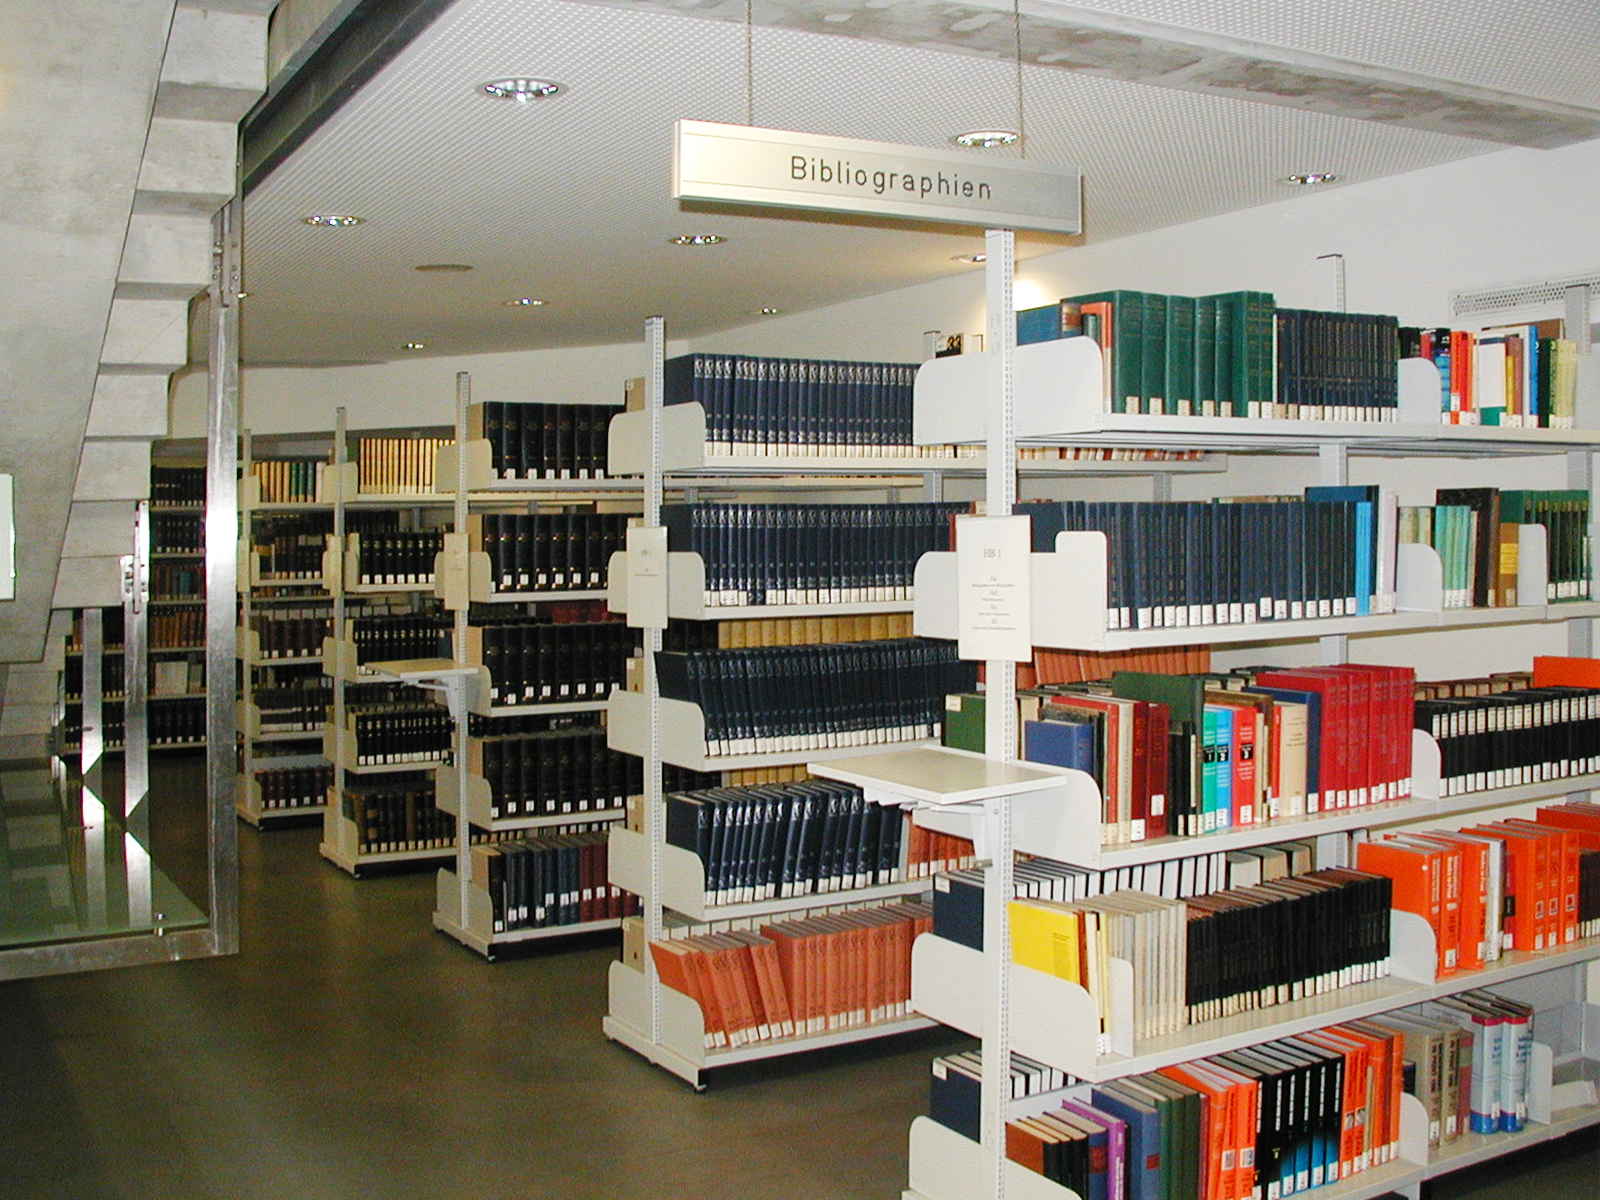 File:Library-shelves-bibliographies-Graz.jpg - Wikipedia